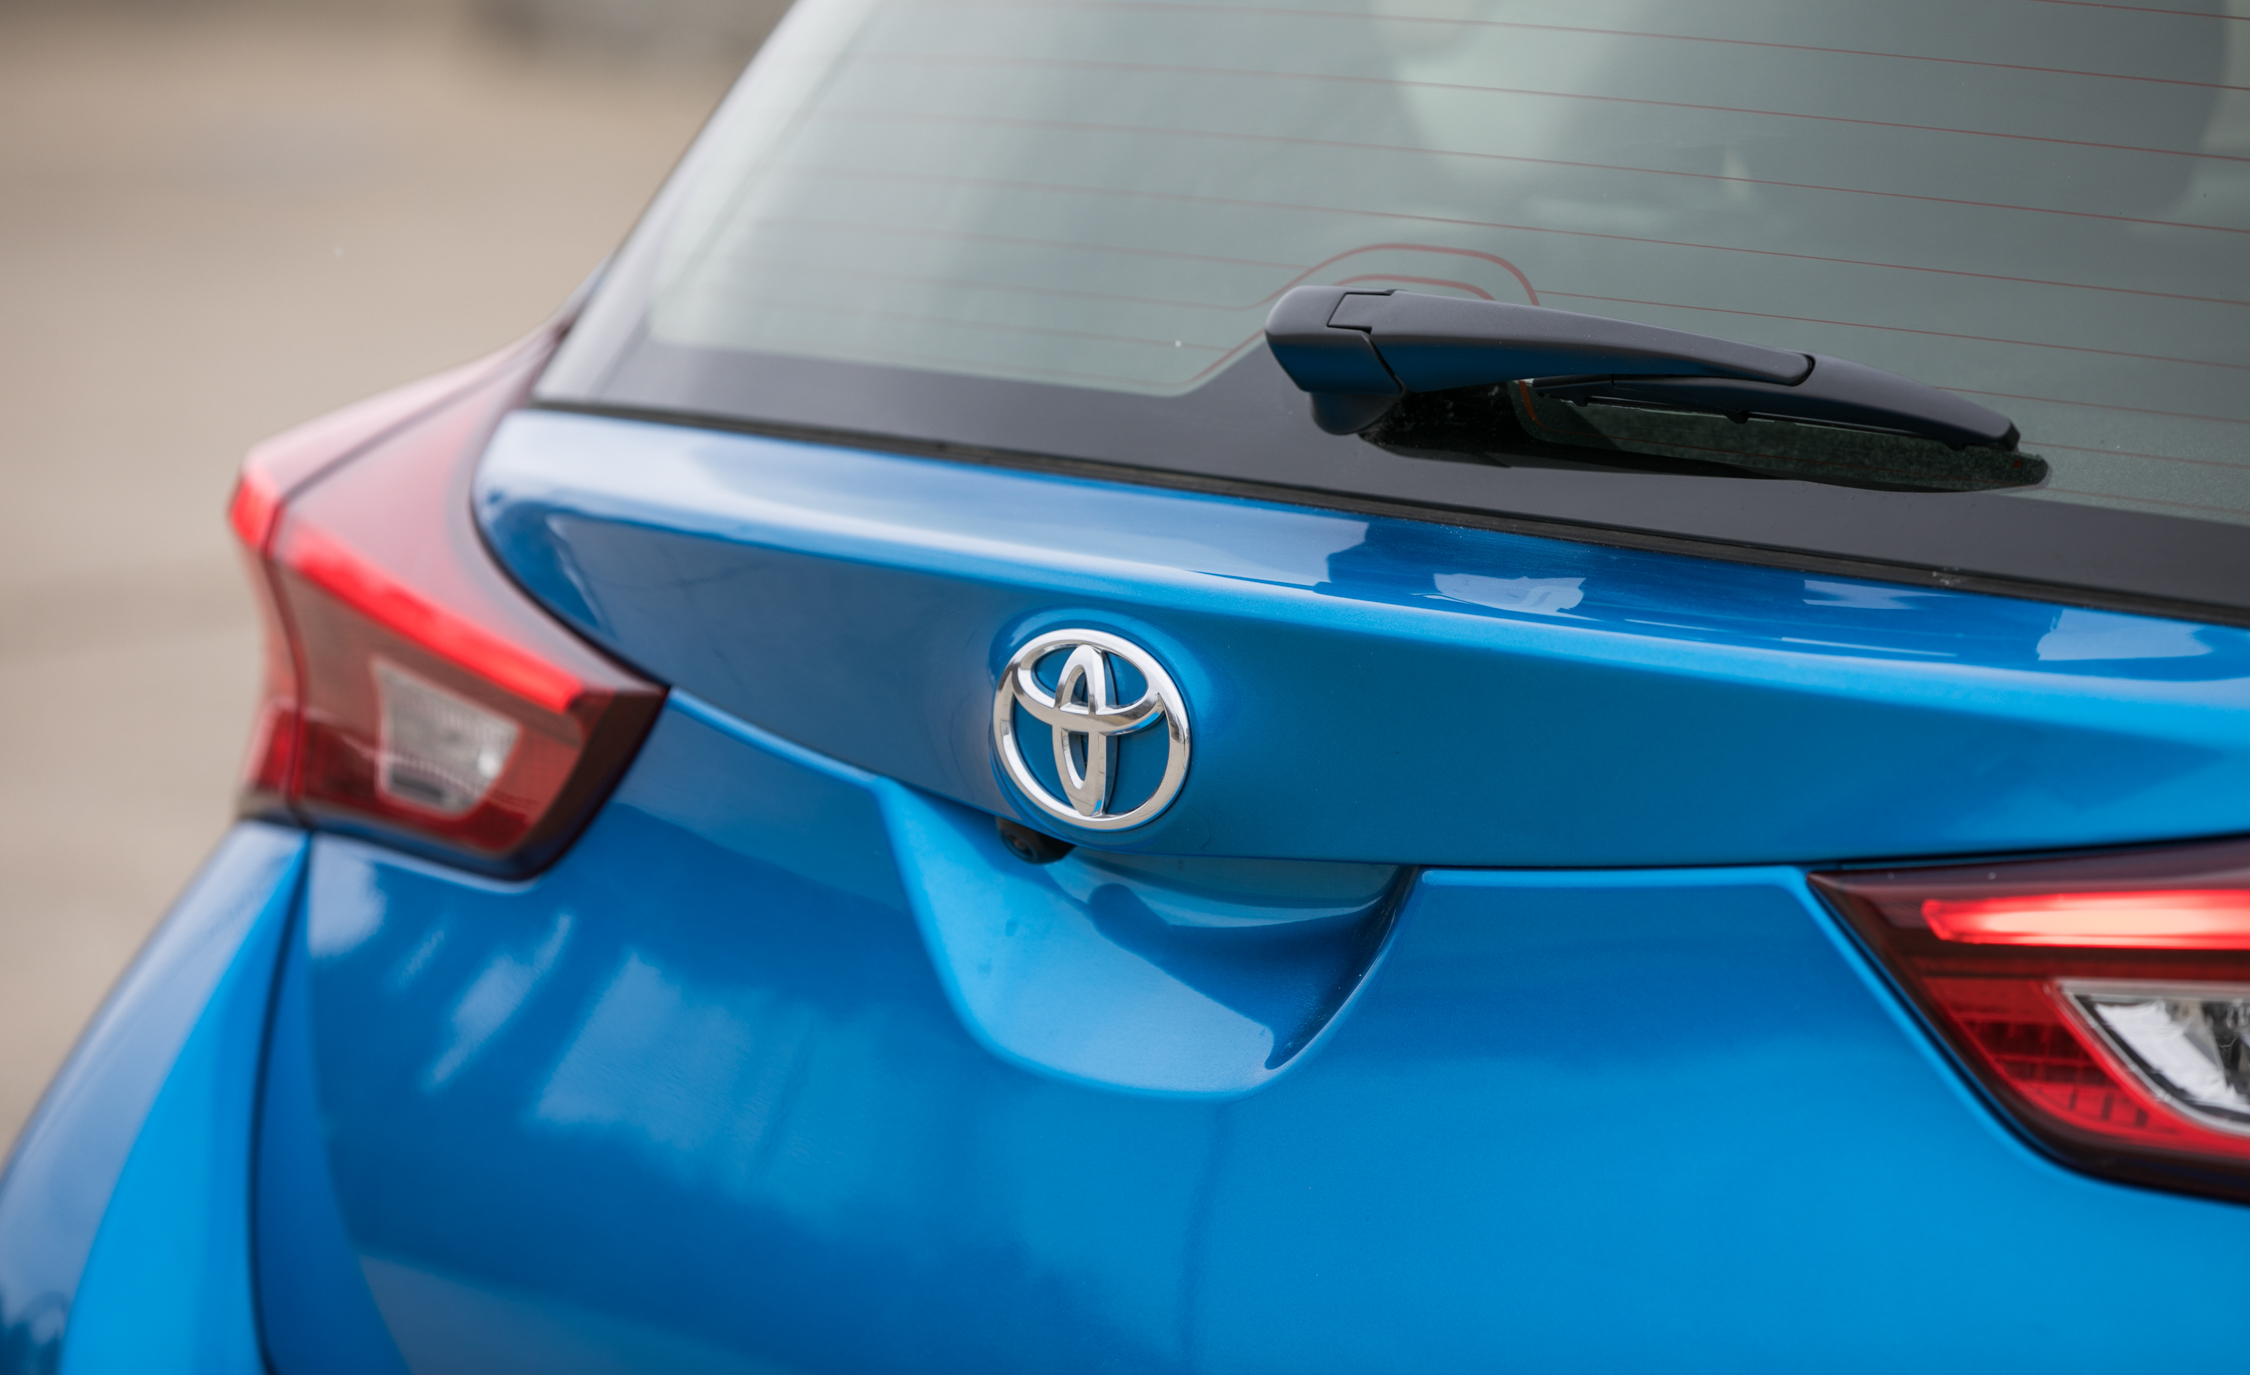 2017 Toyota Corolla IM Hatchback Exterior View Rear Emblem (Photo 16 of 52)